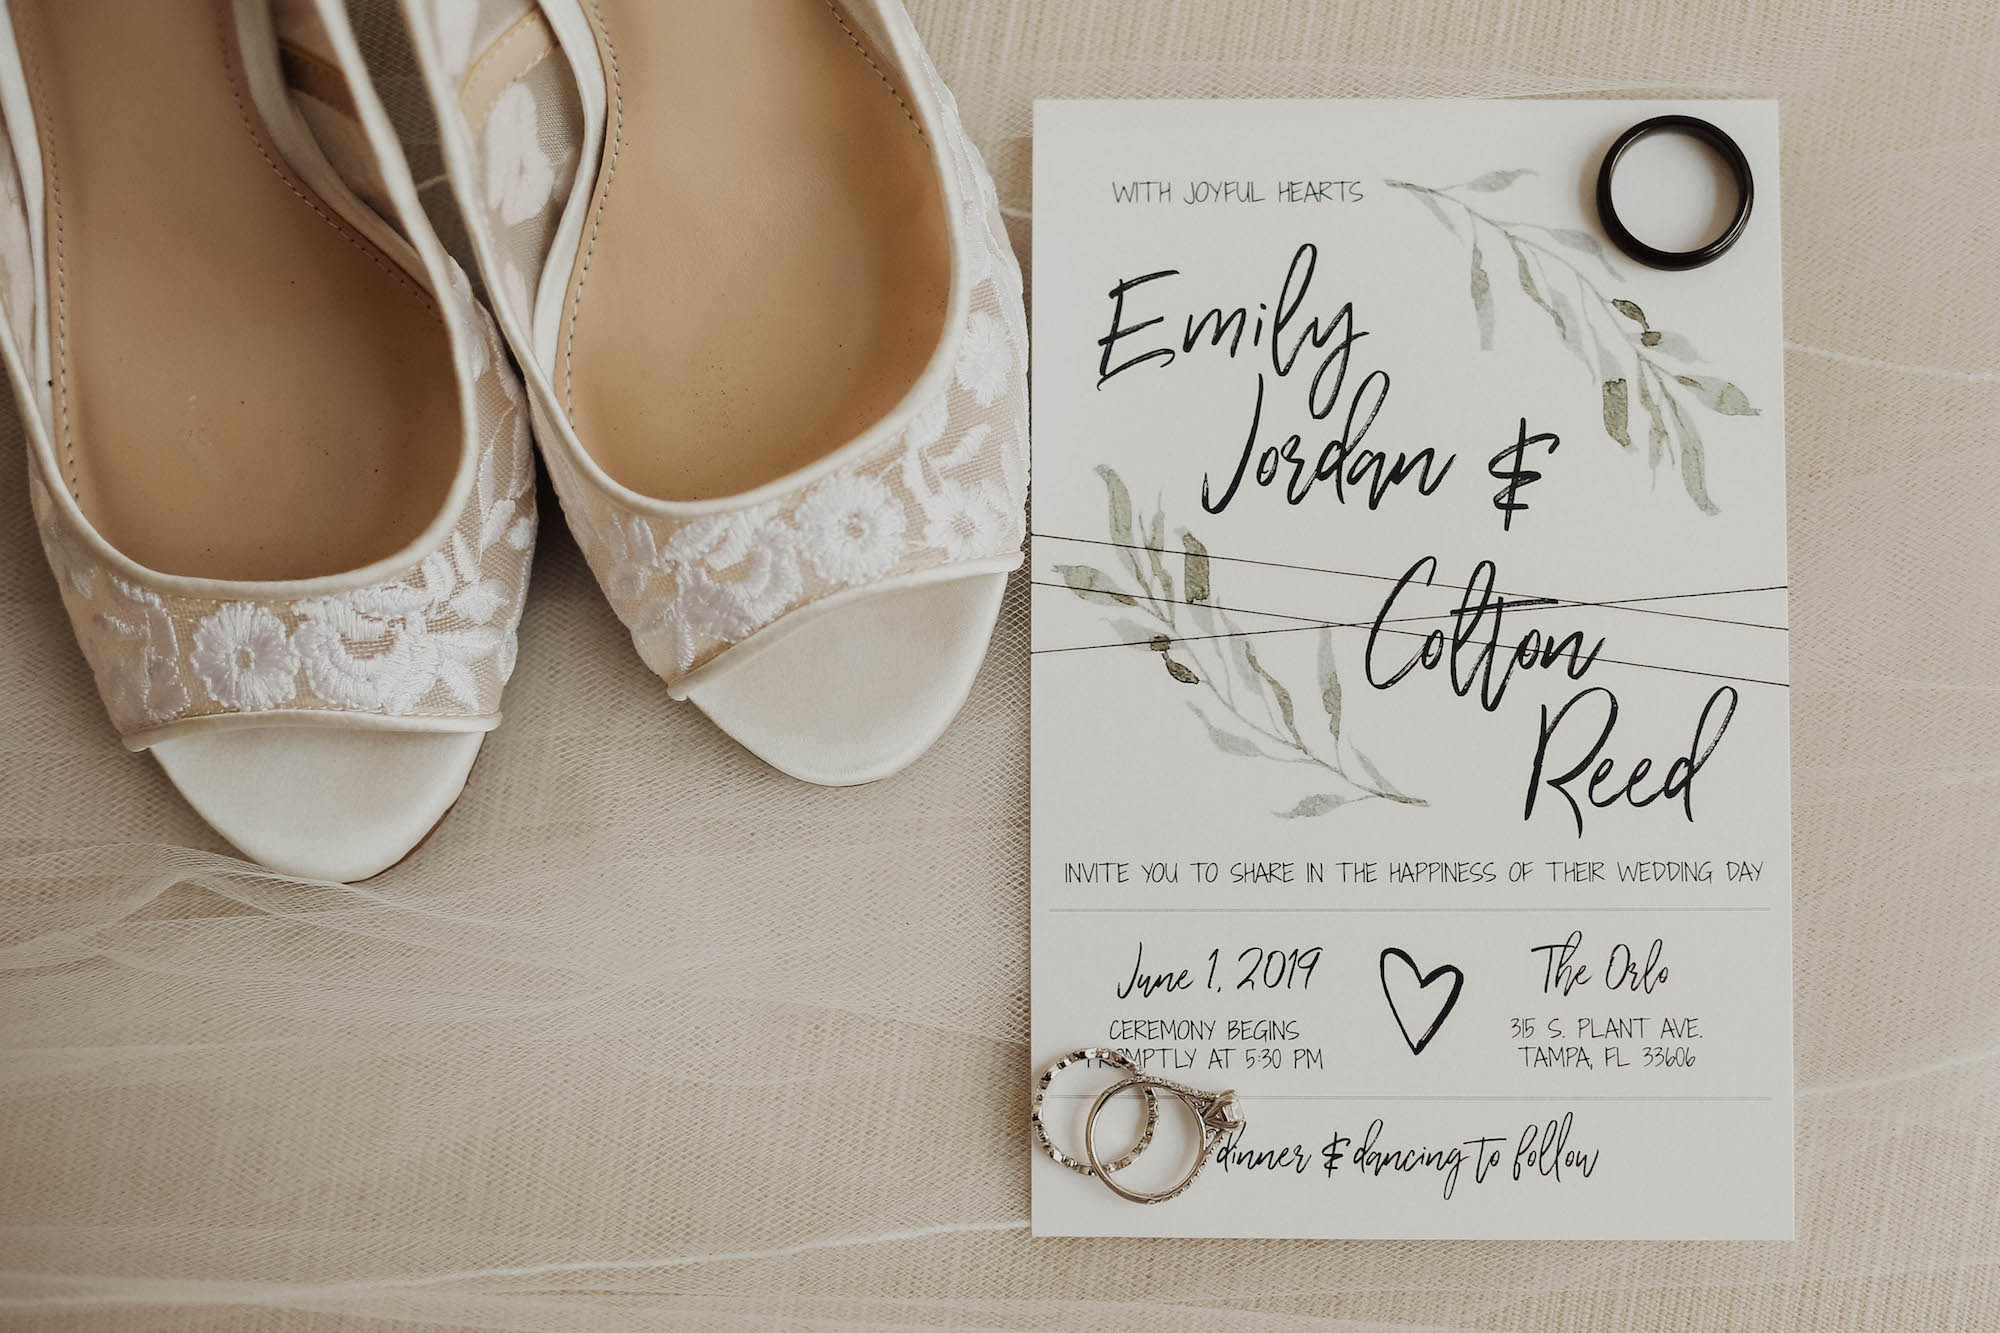 Simple White and Black Font with Greenery Watercolor Save the Date, Ivory Floral Illusion Peep Toe Wedding Shoes